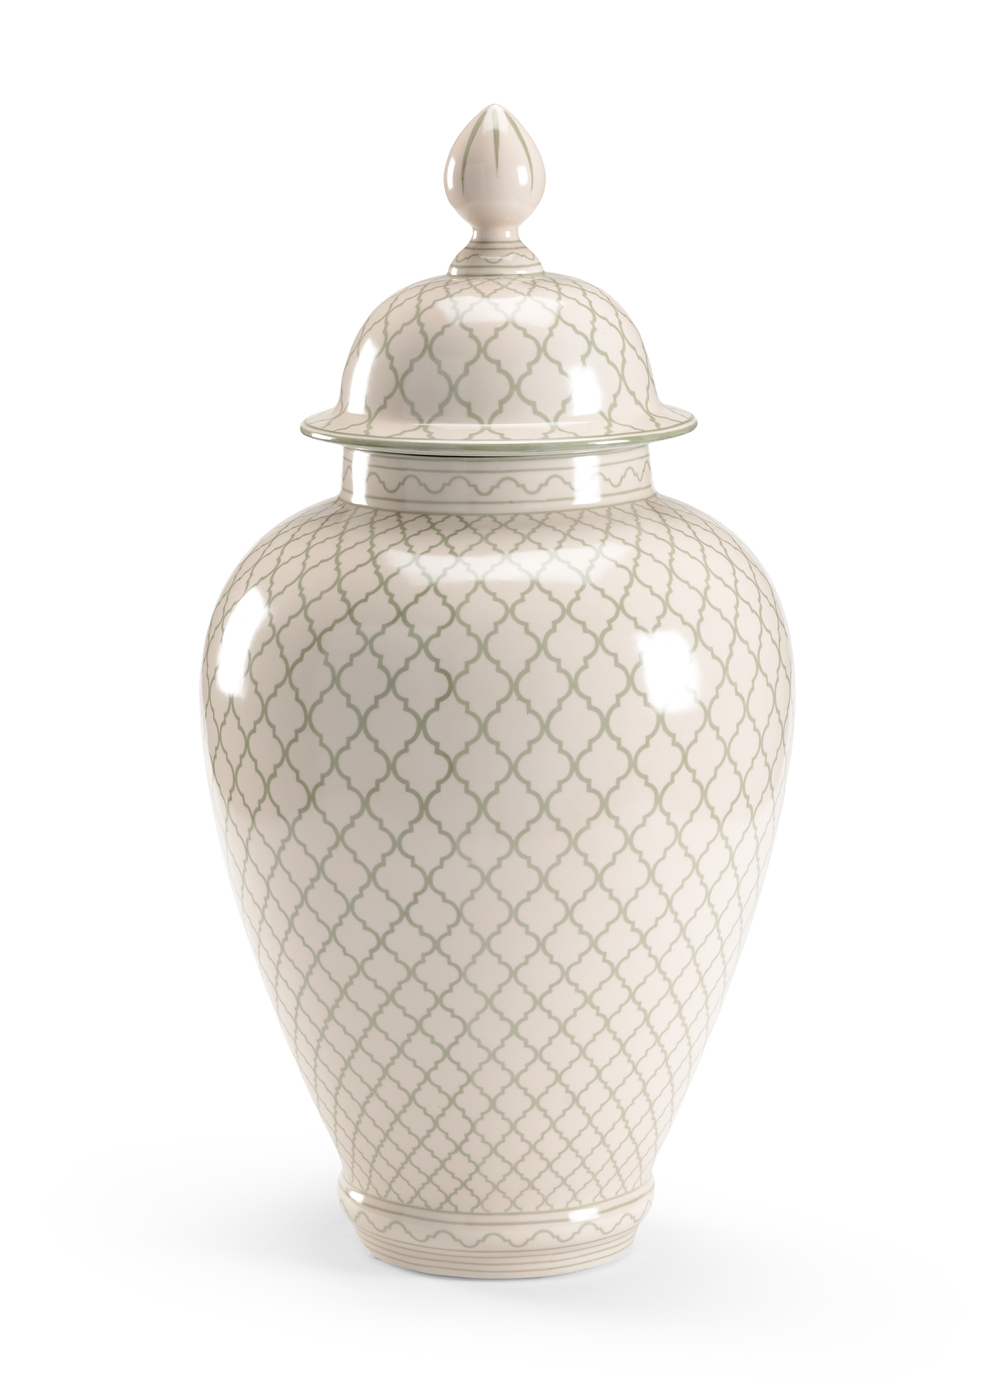 Chelsea House - Veronica Covered Urn